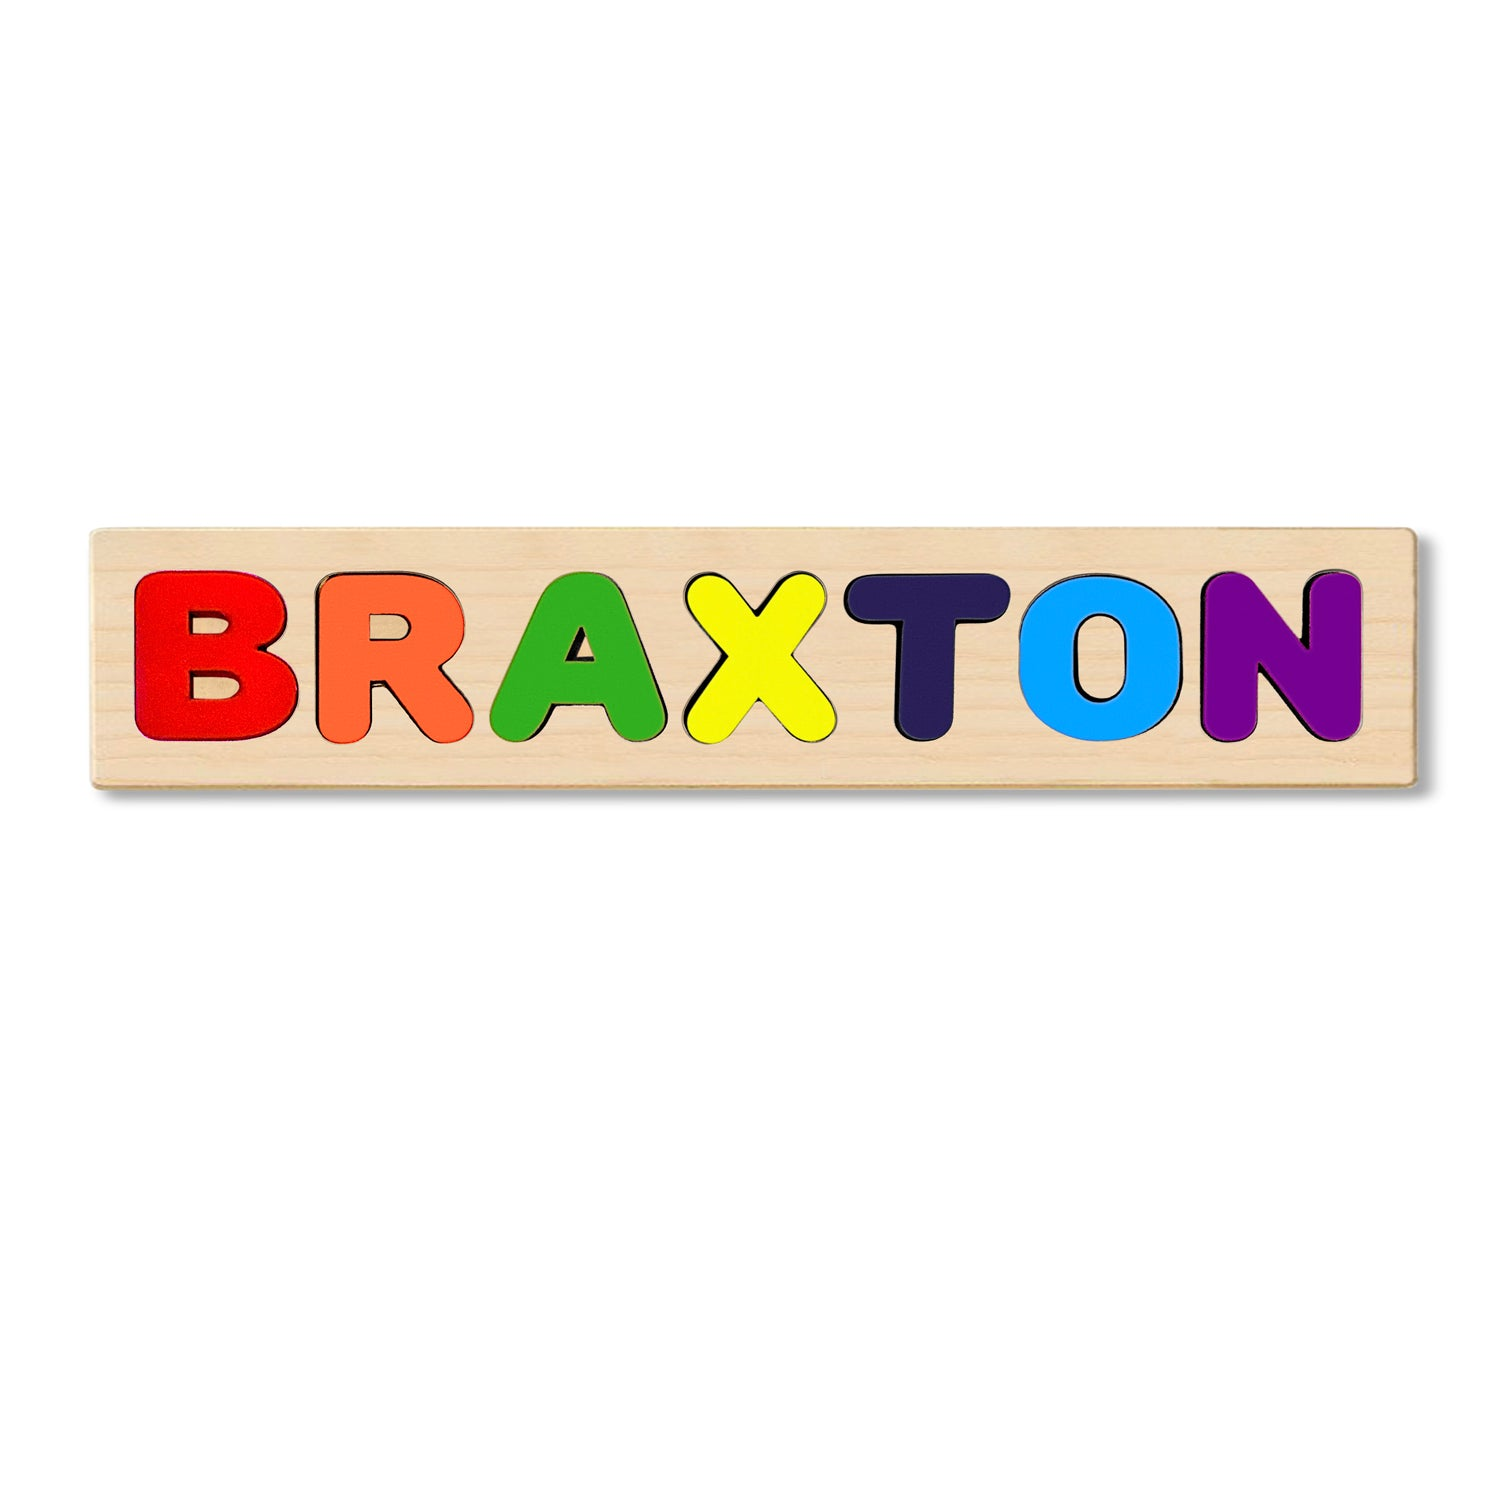 Wooden Personalized Name Puzzle - Any Name Or First & Last Name Choose up to 12 Letters No Extra Cost - BRAXTON